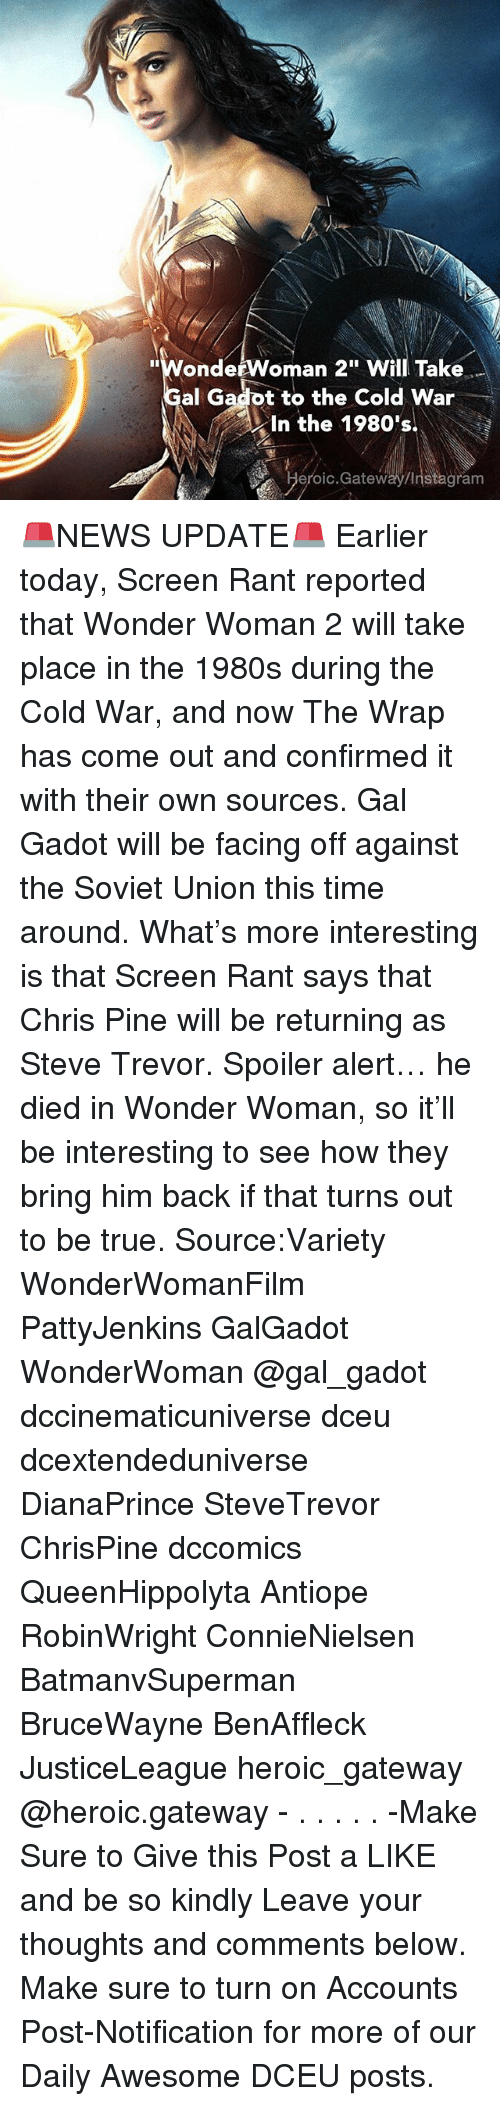 """Spoiler Alerts: """"WondetWoman 2"""" Will Take  al Gadot to the Cold War  In the 1980's  eroic.Gateway/Instagram 🚨NEWS UPDATE🚨 Earlier today, Screen Rant reported that Wonder Woman 2 will take place in the 1980s during the Cold War, and now The Wrap has come out and confirmed it with their own sources. Gal Gadot will be facing off against the Soviet Union this time around. What's more interesting is that Screen Rant says that Chris Pine will be returning as Steve Trevor. Spoiler alert… he died in Wonder Woman, so it'll be interesting to see how they bring him back if that turns out to be true. Source:Variety WonderWomanFilm PattyJenkins GalGadot WonderWoman @gal_gadot dccinematicuniverse dceu dcextendeduniverse DianaPrince SteveTrevor ChrisPine dccomics QueenHippolyta Antiope RobinWright ConnieNielsen BatmanvSuperman BruceWayne BenAffleck JusticeLeague heroic_gateway @heroic.gateway - . . . . . -Make Sure to Give this Post a LIKE and be so kindly Leave your thoughts and comments below. Make sure to turn on Accounts Post-Notification for more of our Daily Awesome DCEU posts."""